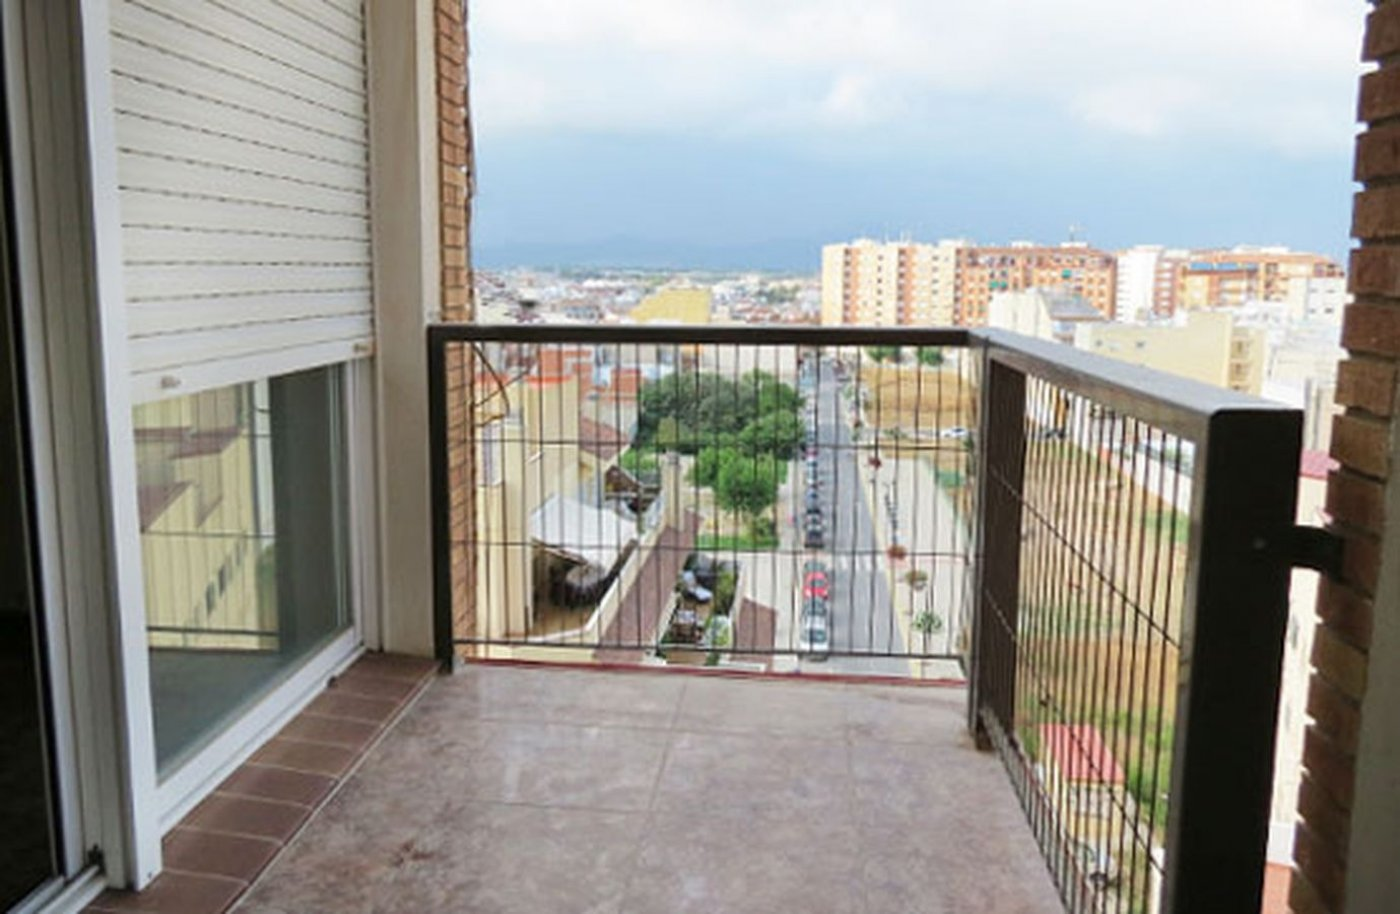 Flat for sale in Avd. libertad, Vinaros